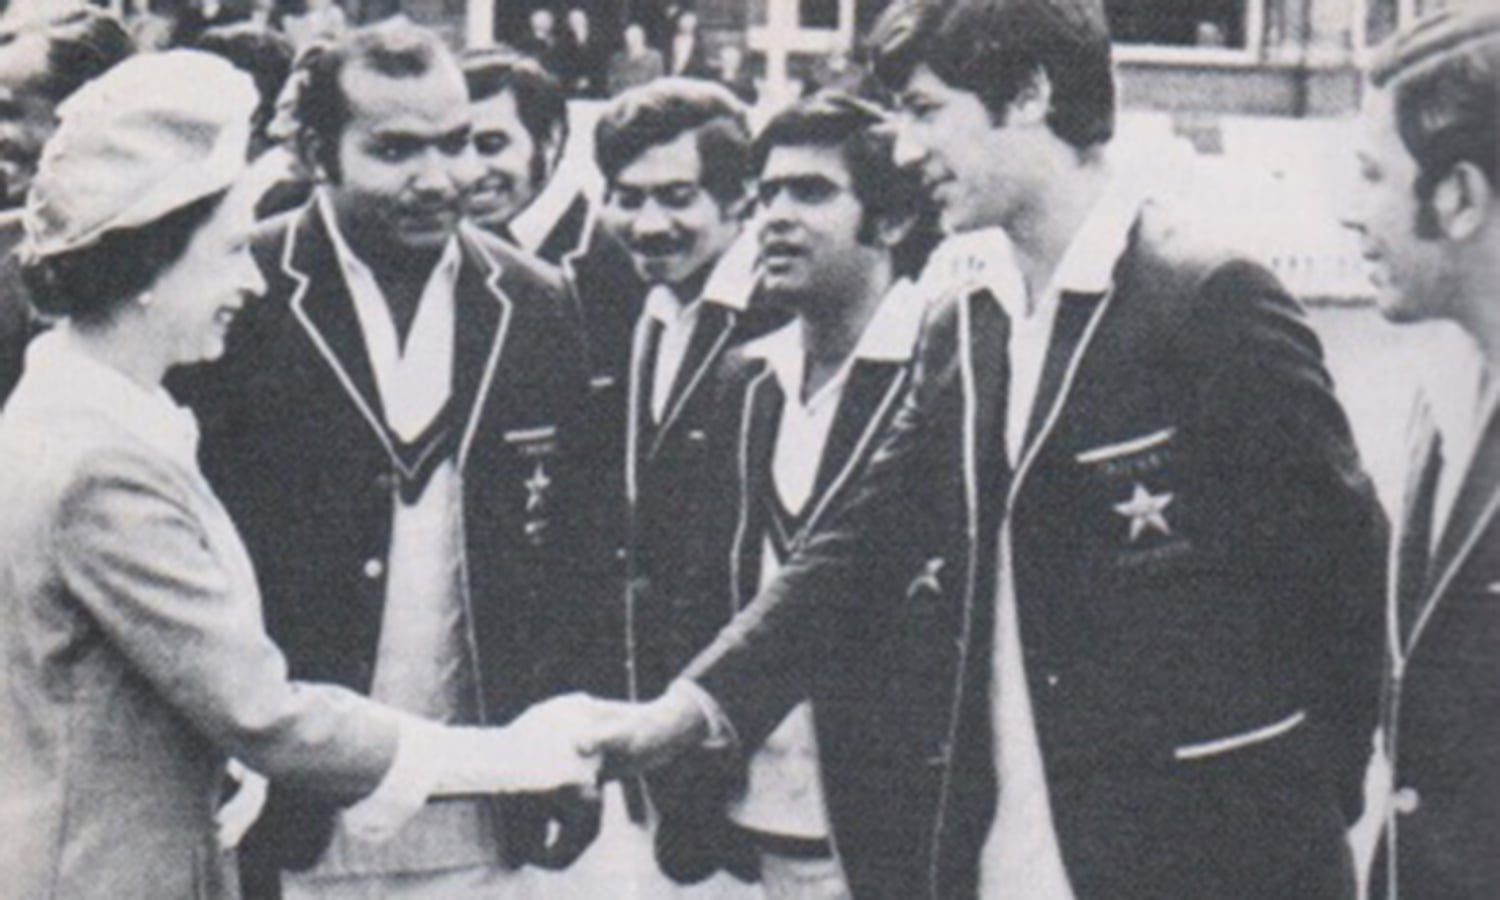 Intikhab introduces his team to the Queen (London, 1971).